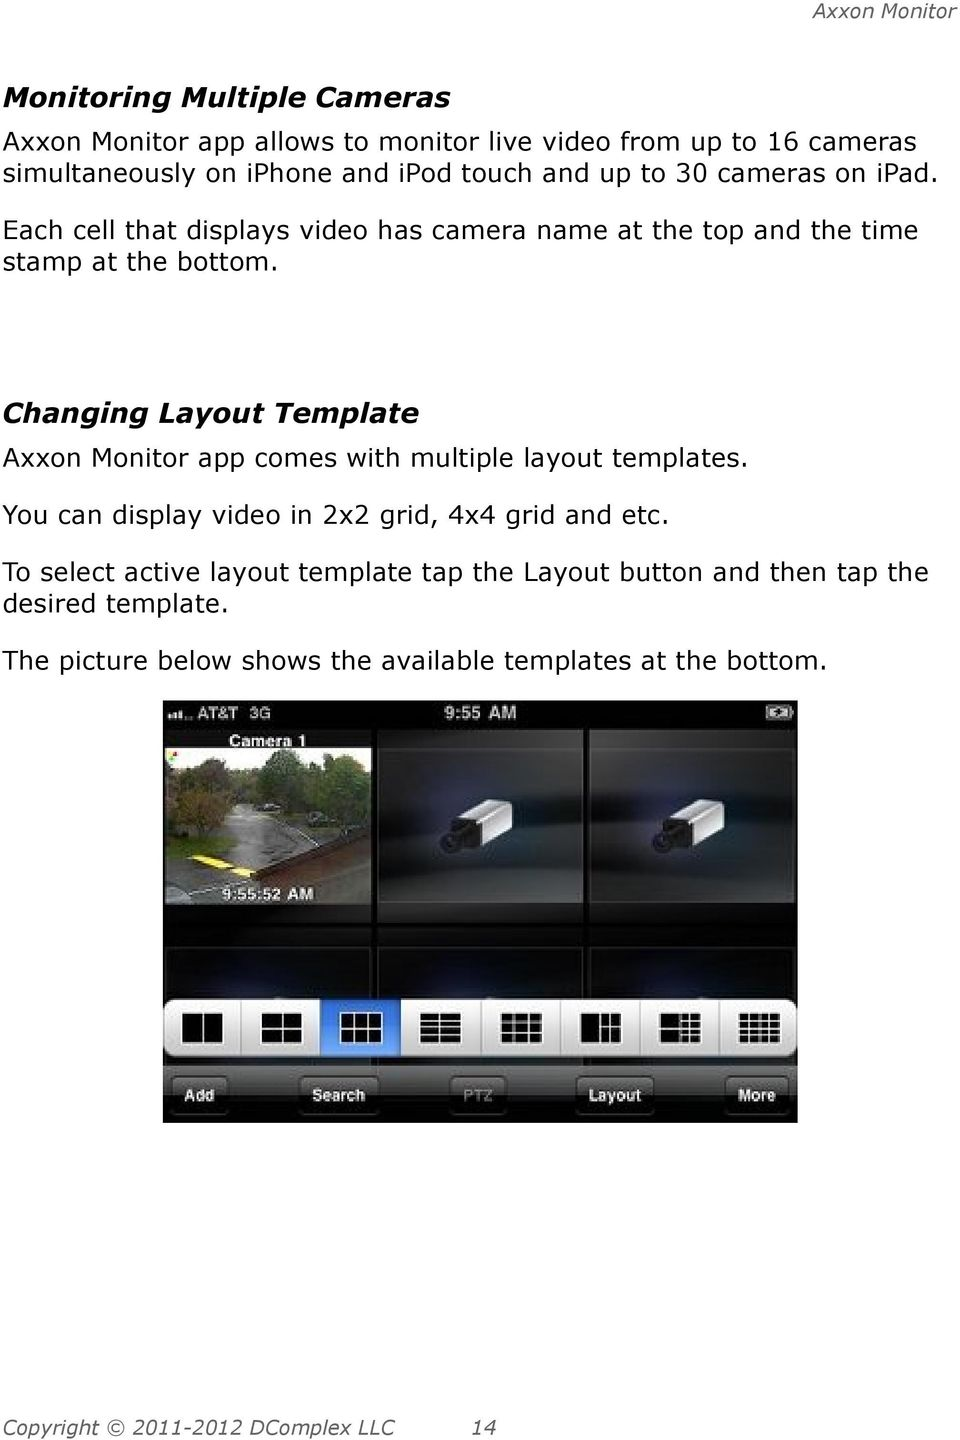 Changing Layout Template Axxon Monitor app comes with multiple layout templates. You can display video in 2x2 grid, 4x4 grid and etc.